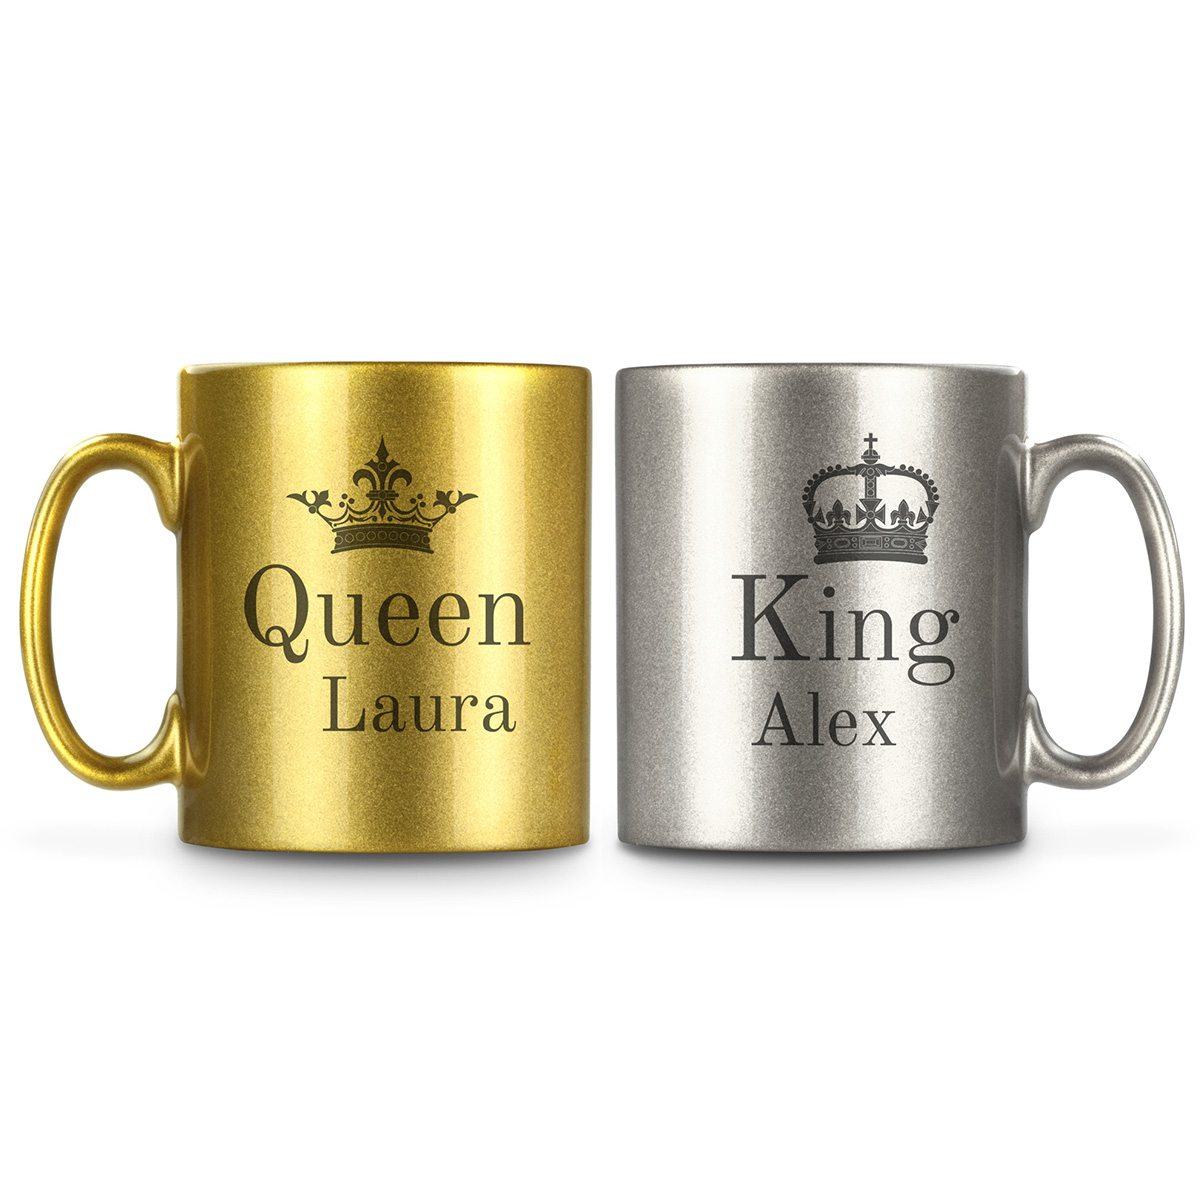 Personalisierbare Partnertasse Gold Silber King And Queen